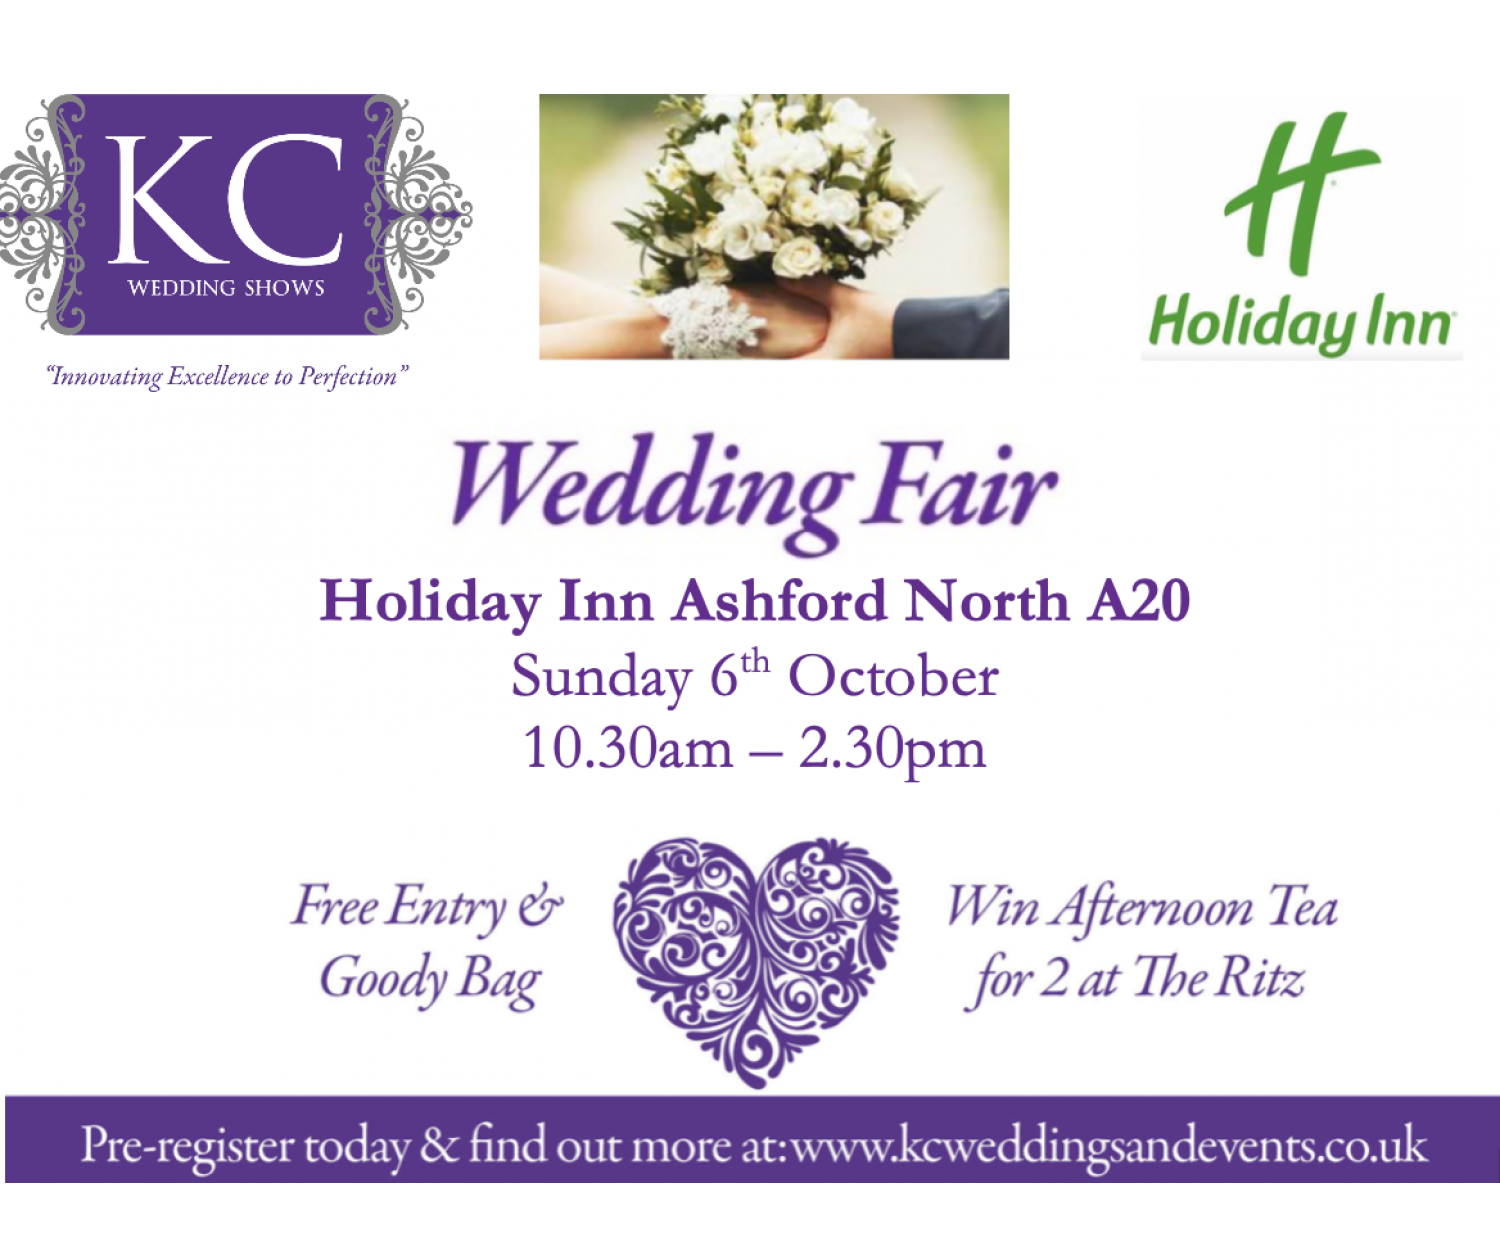 Holiday Inn Ashford North A20 Wedding Show